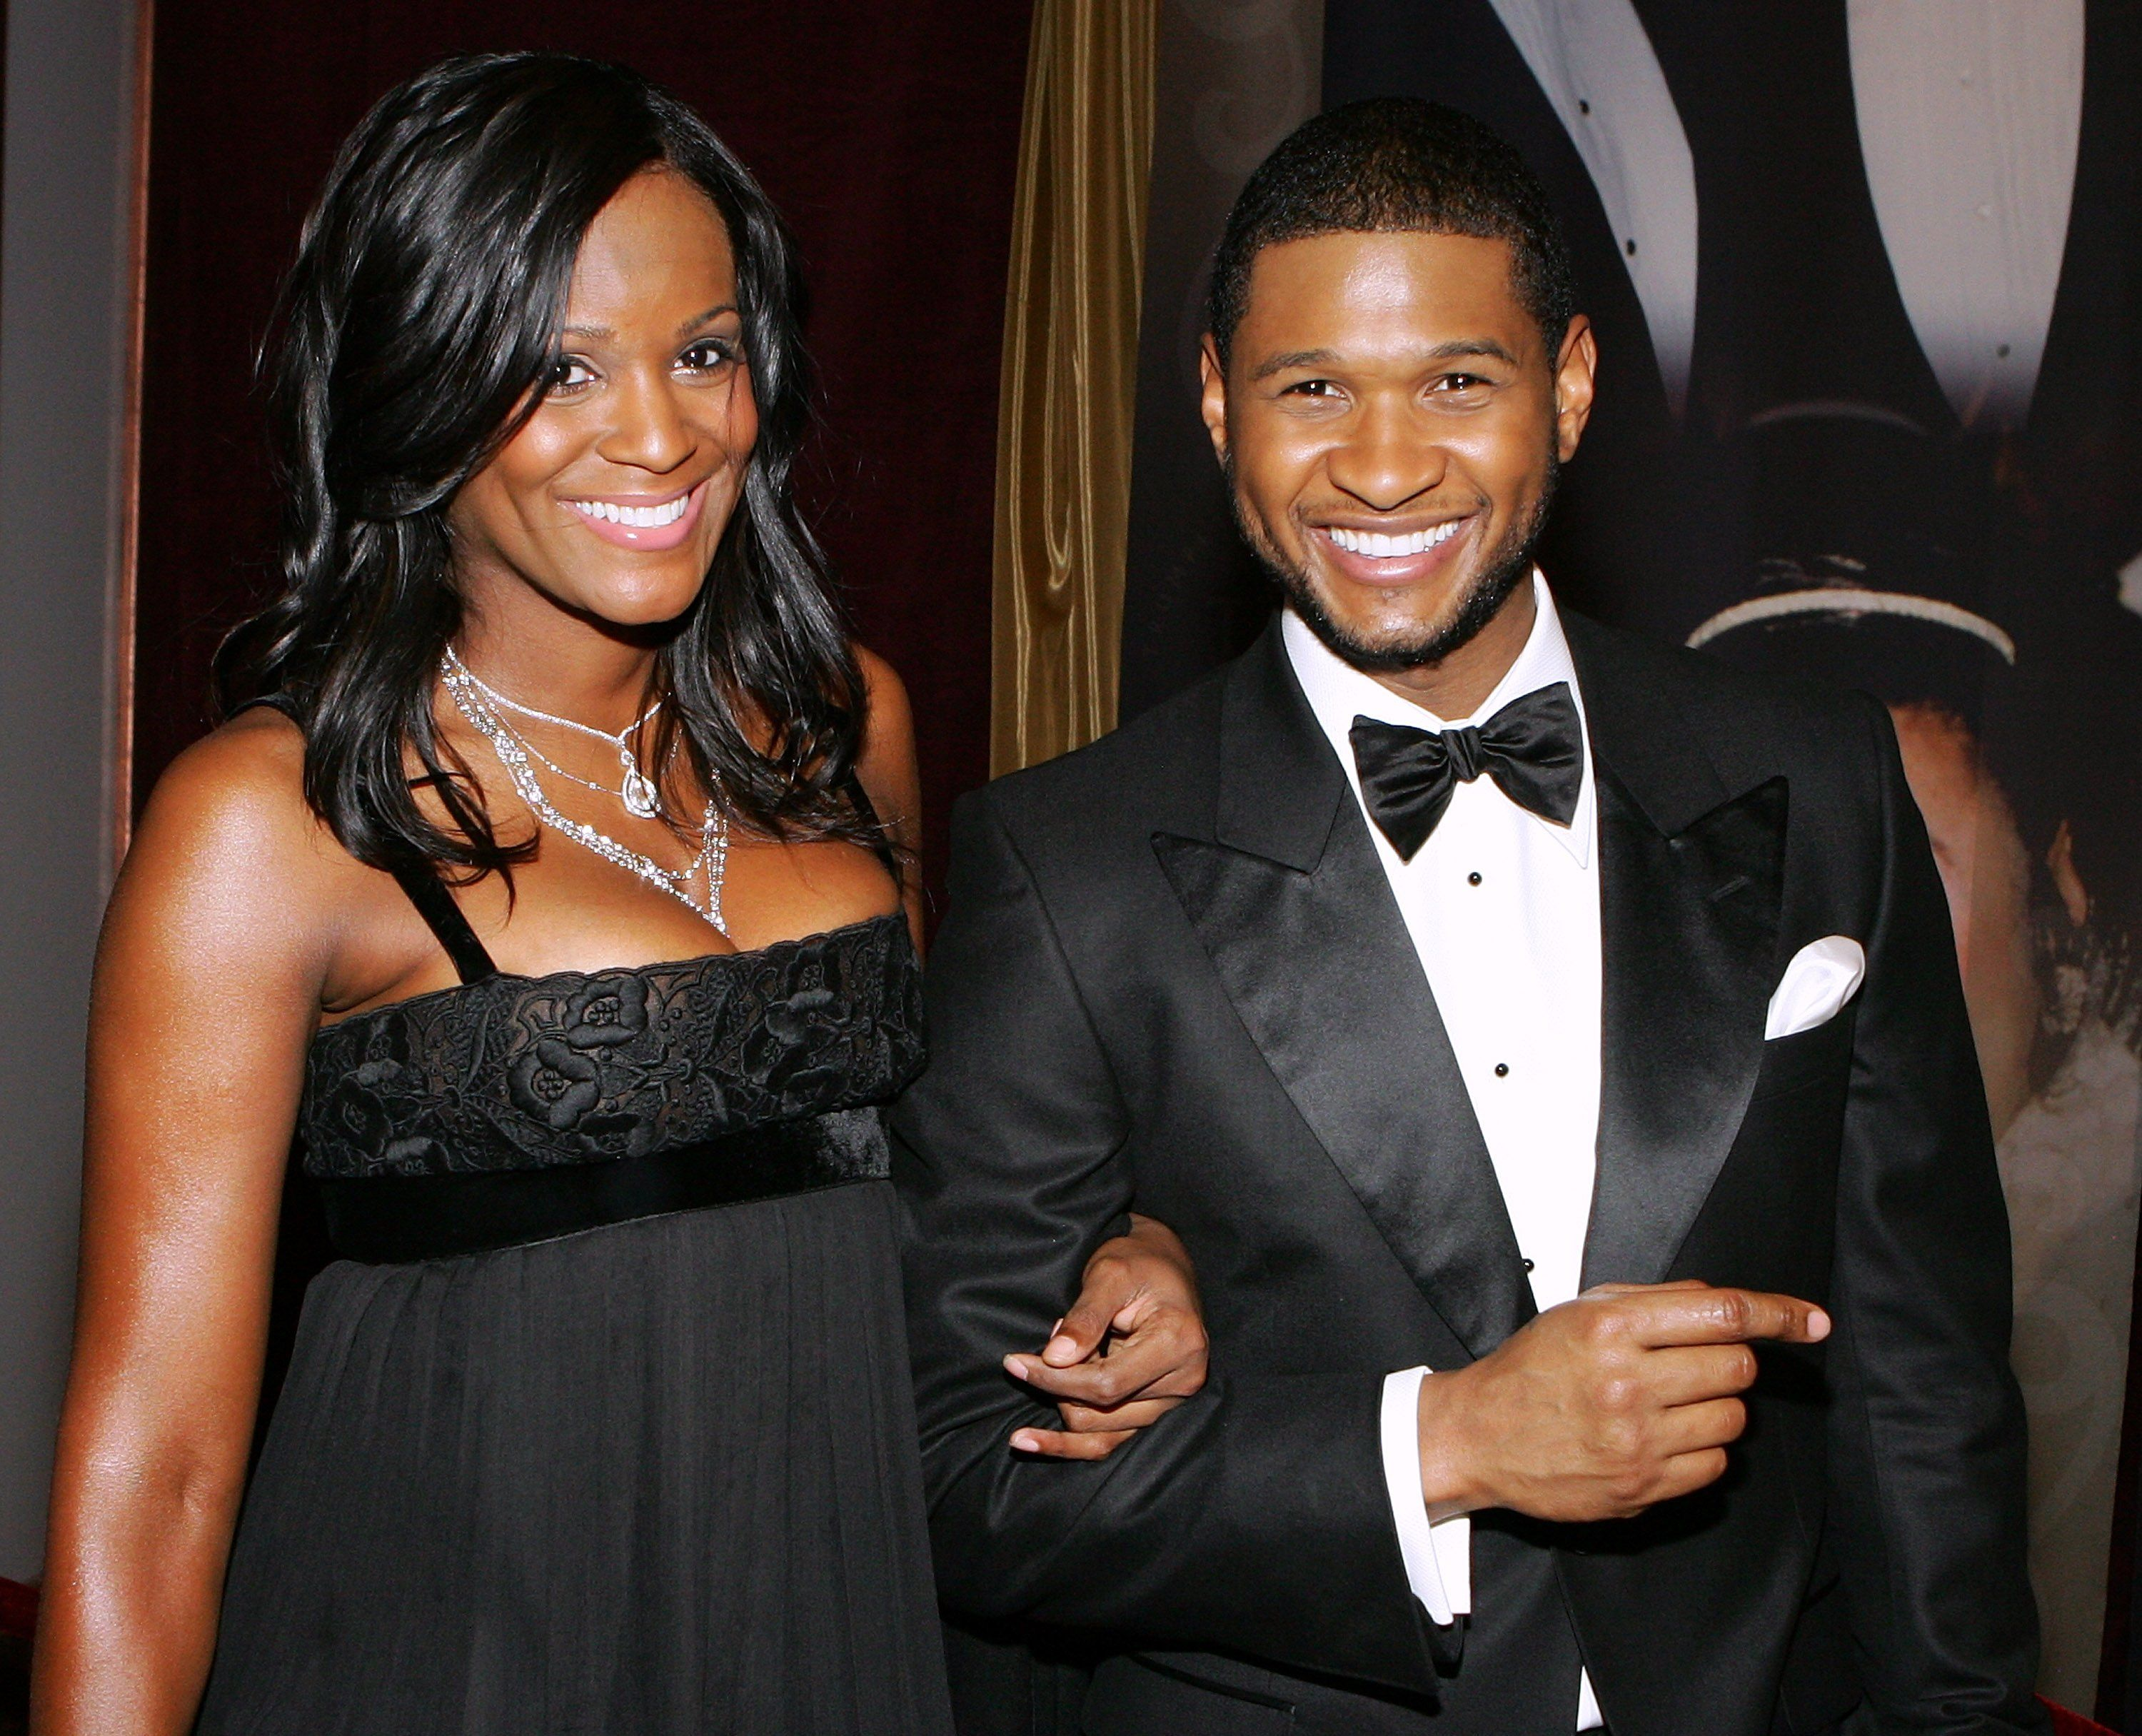 Usher Raymond and Tameka Foster at the 15th annual Trumpet Awards in Las Vegas in 2007 | Source: Getty Images